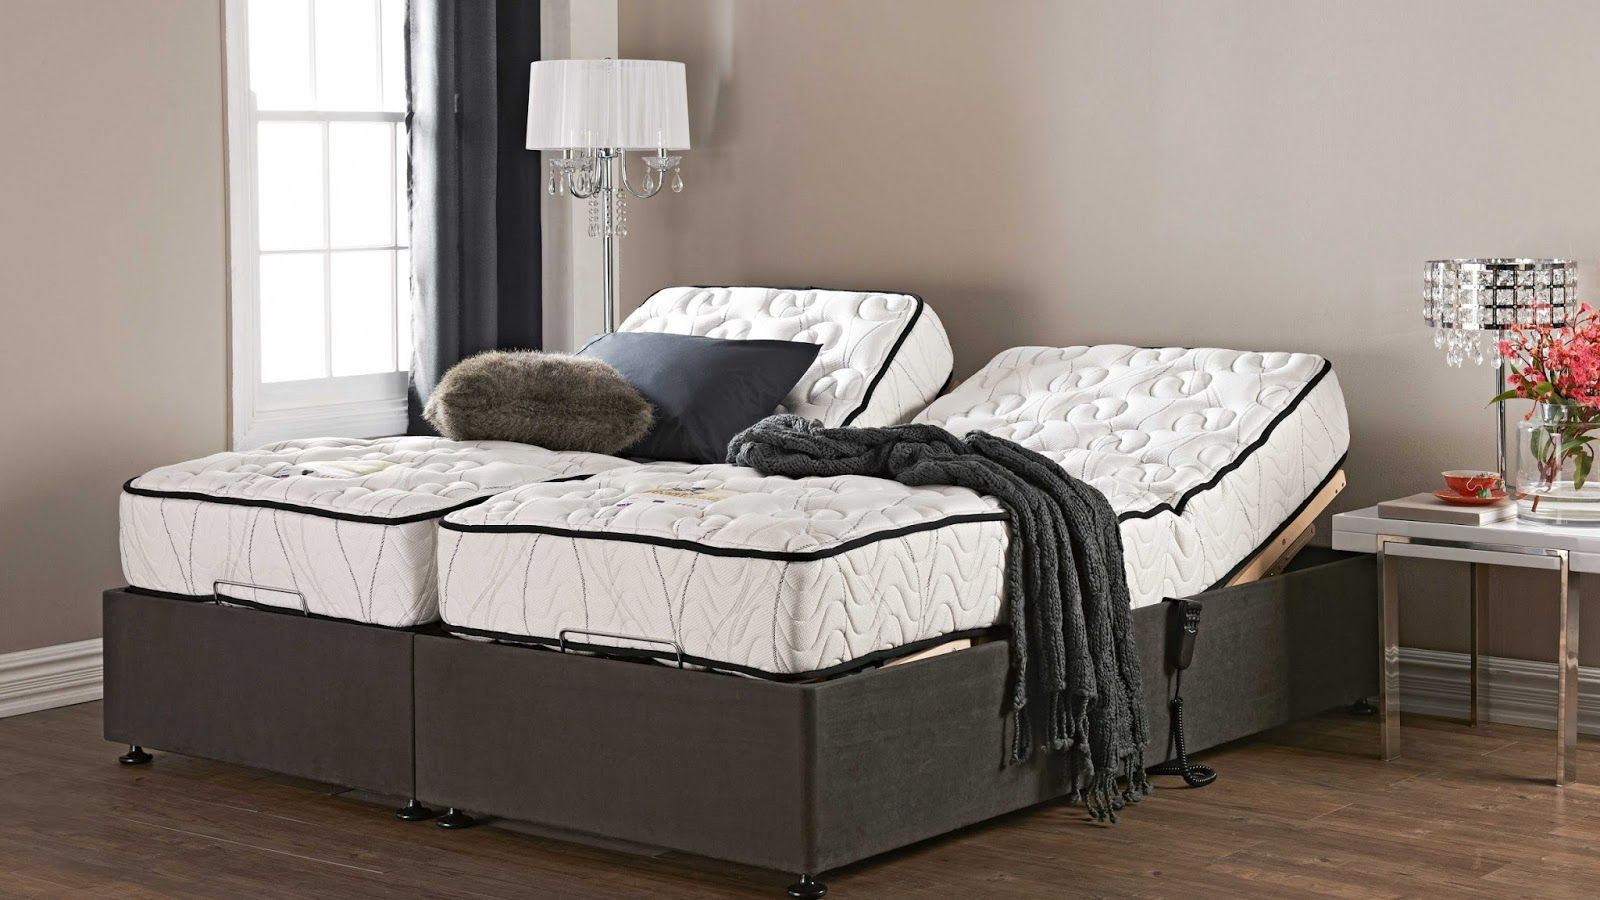 Best Mattress Split King Adjustable Bed Frame With Nightstand 400 x 300